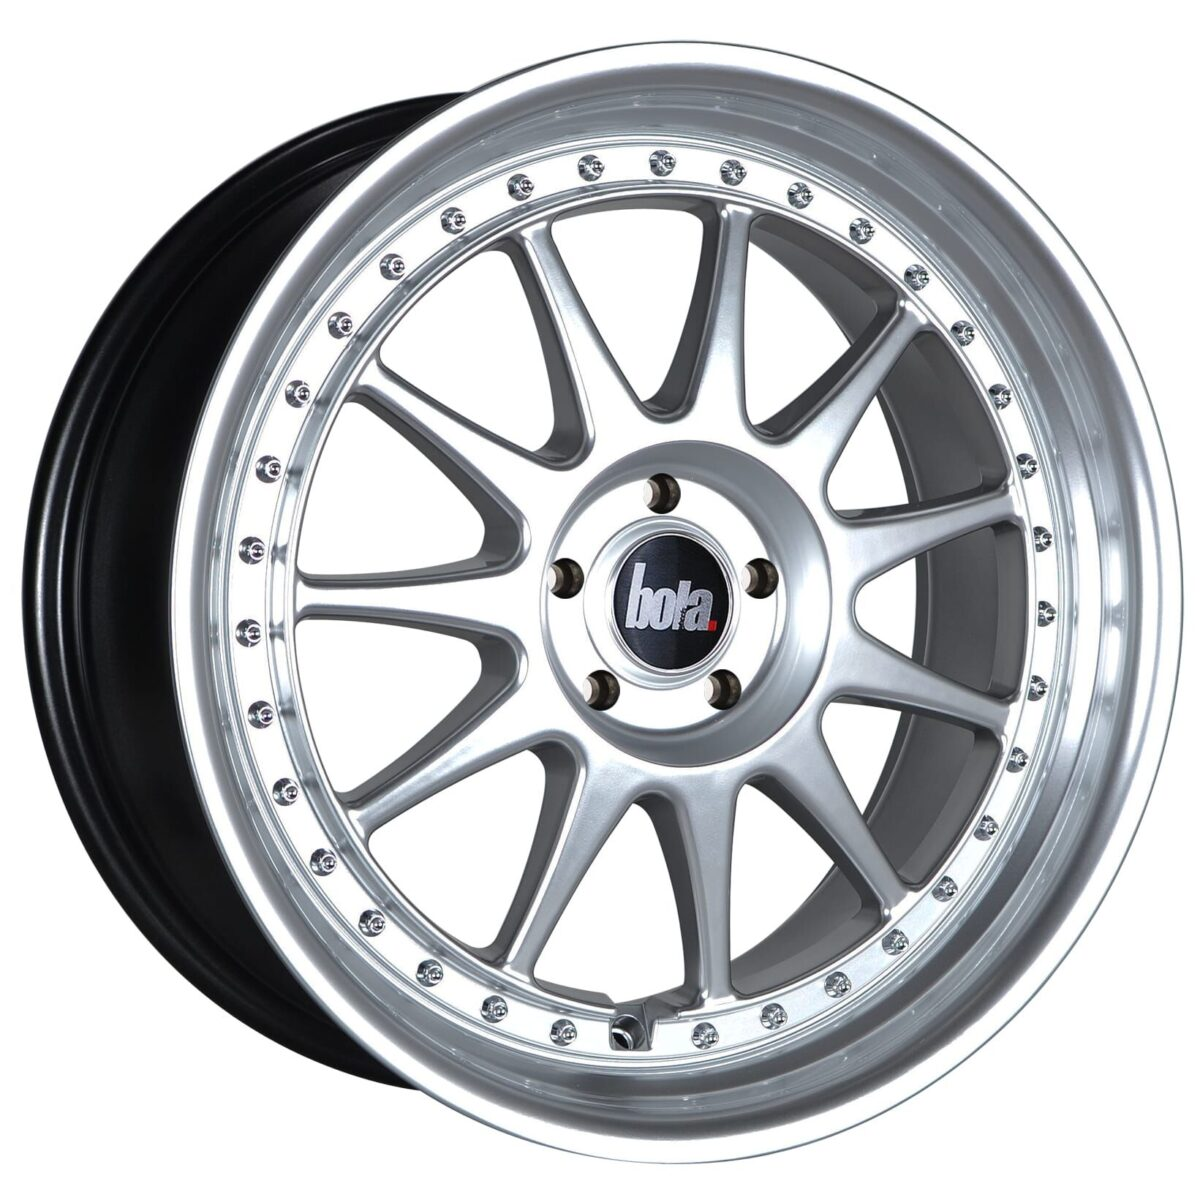 "18"" BOLA B4 Wheels - Hyper Silver with Silver Rivets - All BMW Models"